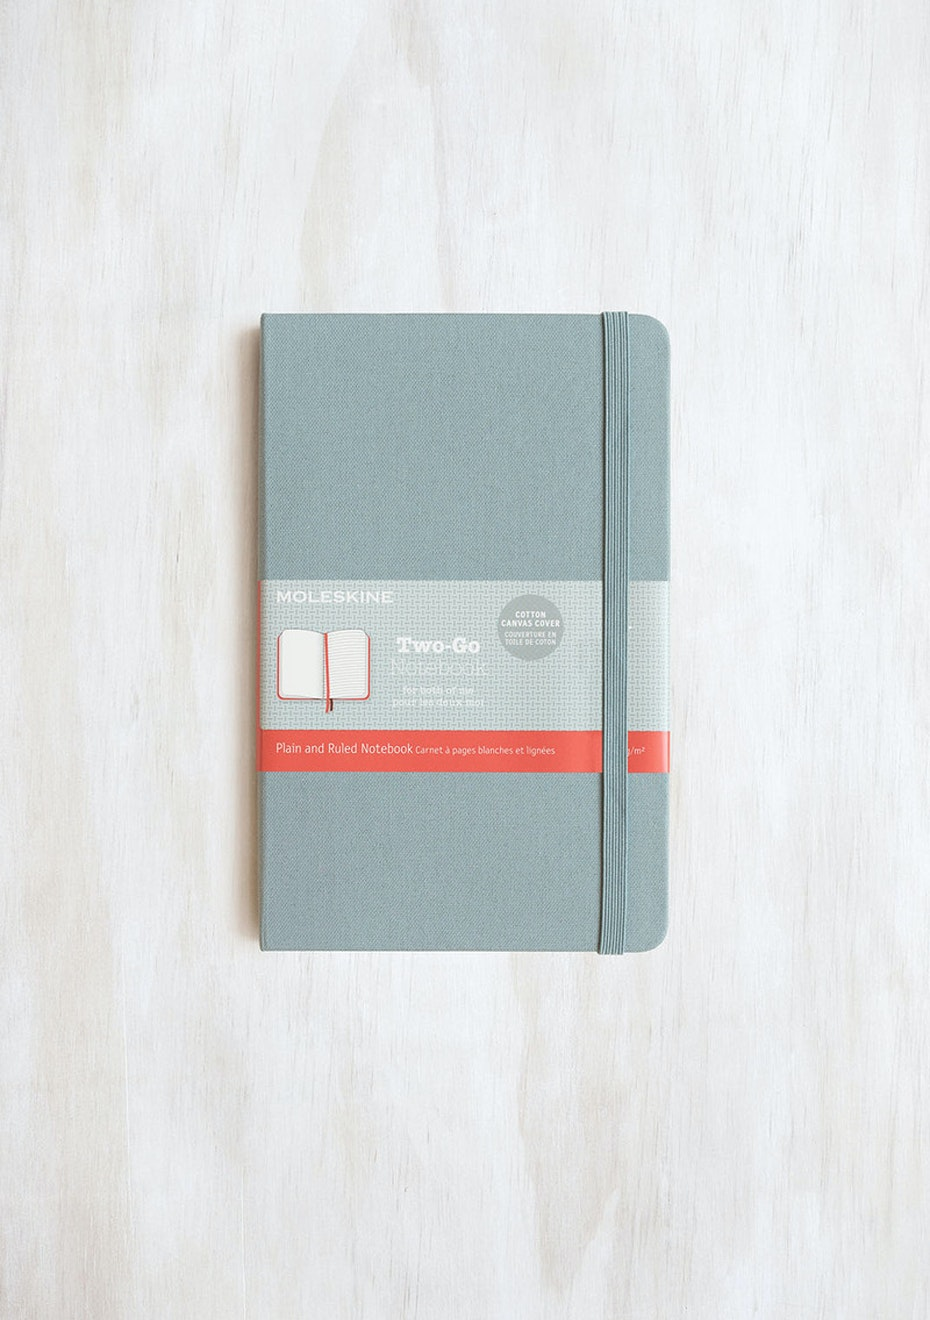 Moleskine - Two-Go Notebook - Canvas Cover - Ruled + Plain - Medium